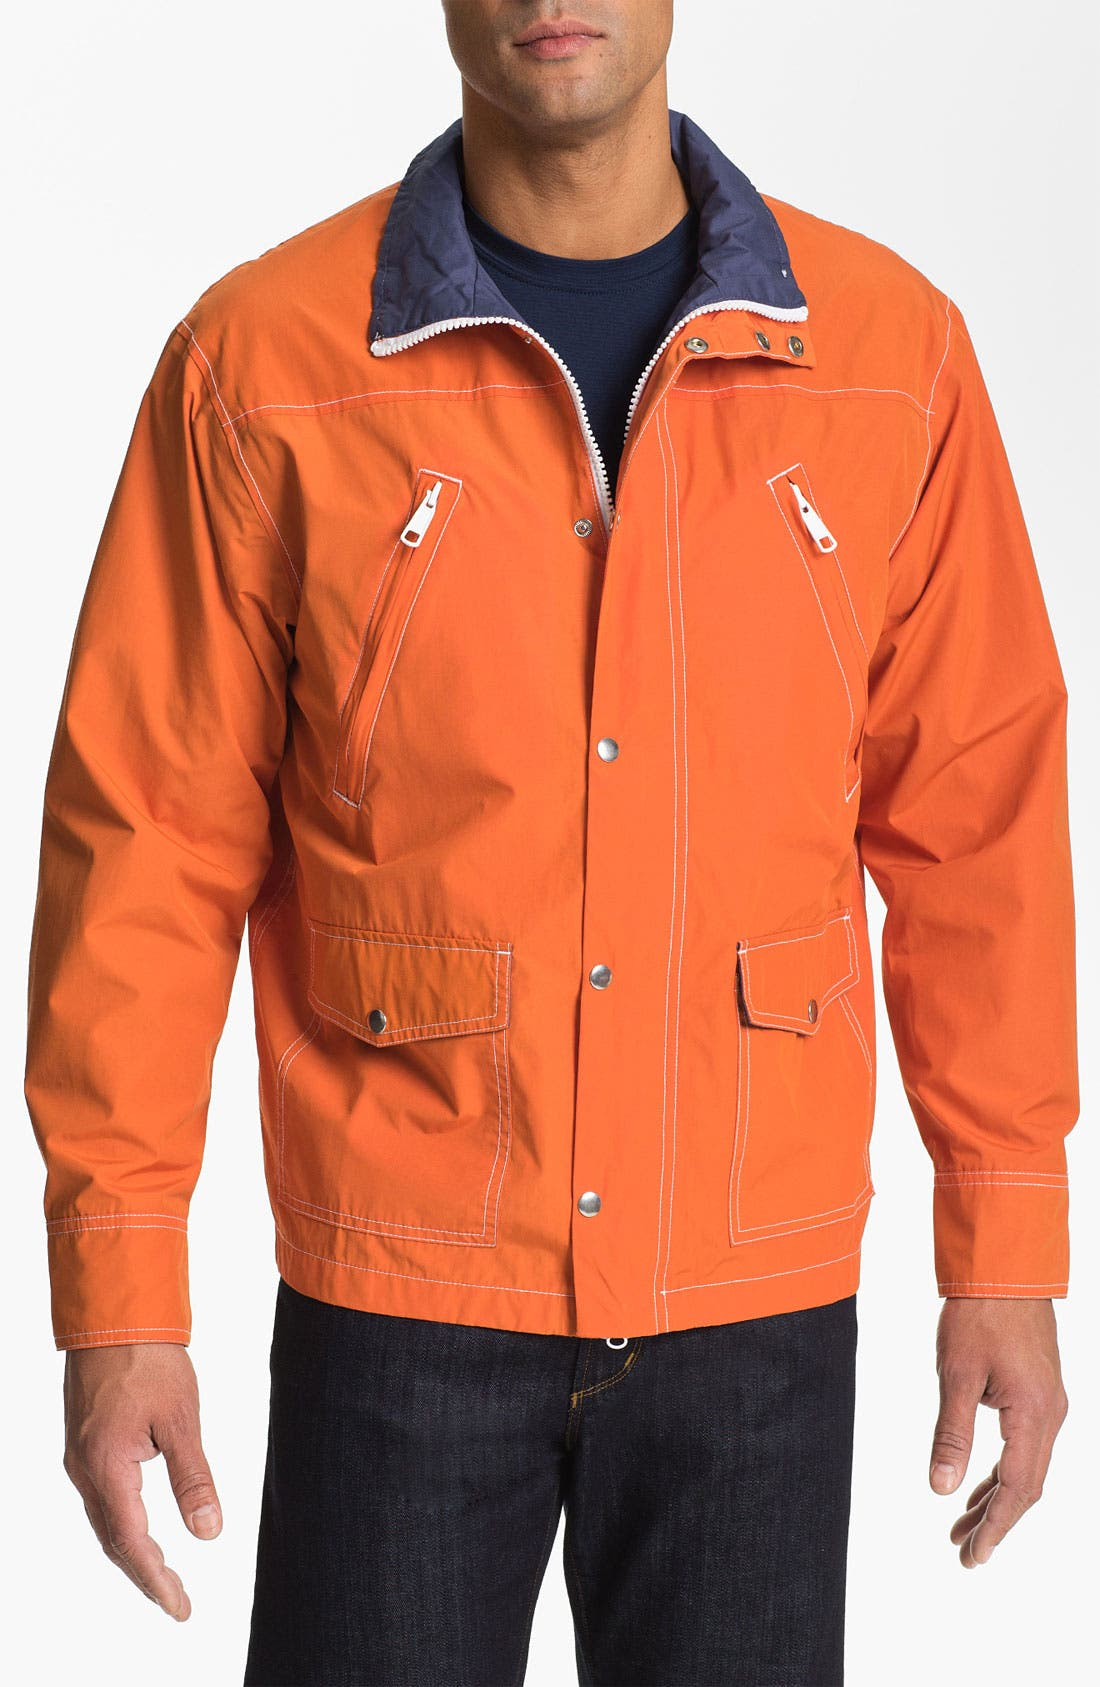 Alternate Image 1 Selected - Cutter & Buck 'North Beach Spring' Jacket (Big & Tall)